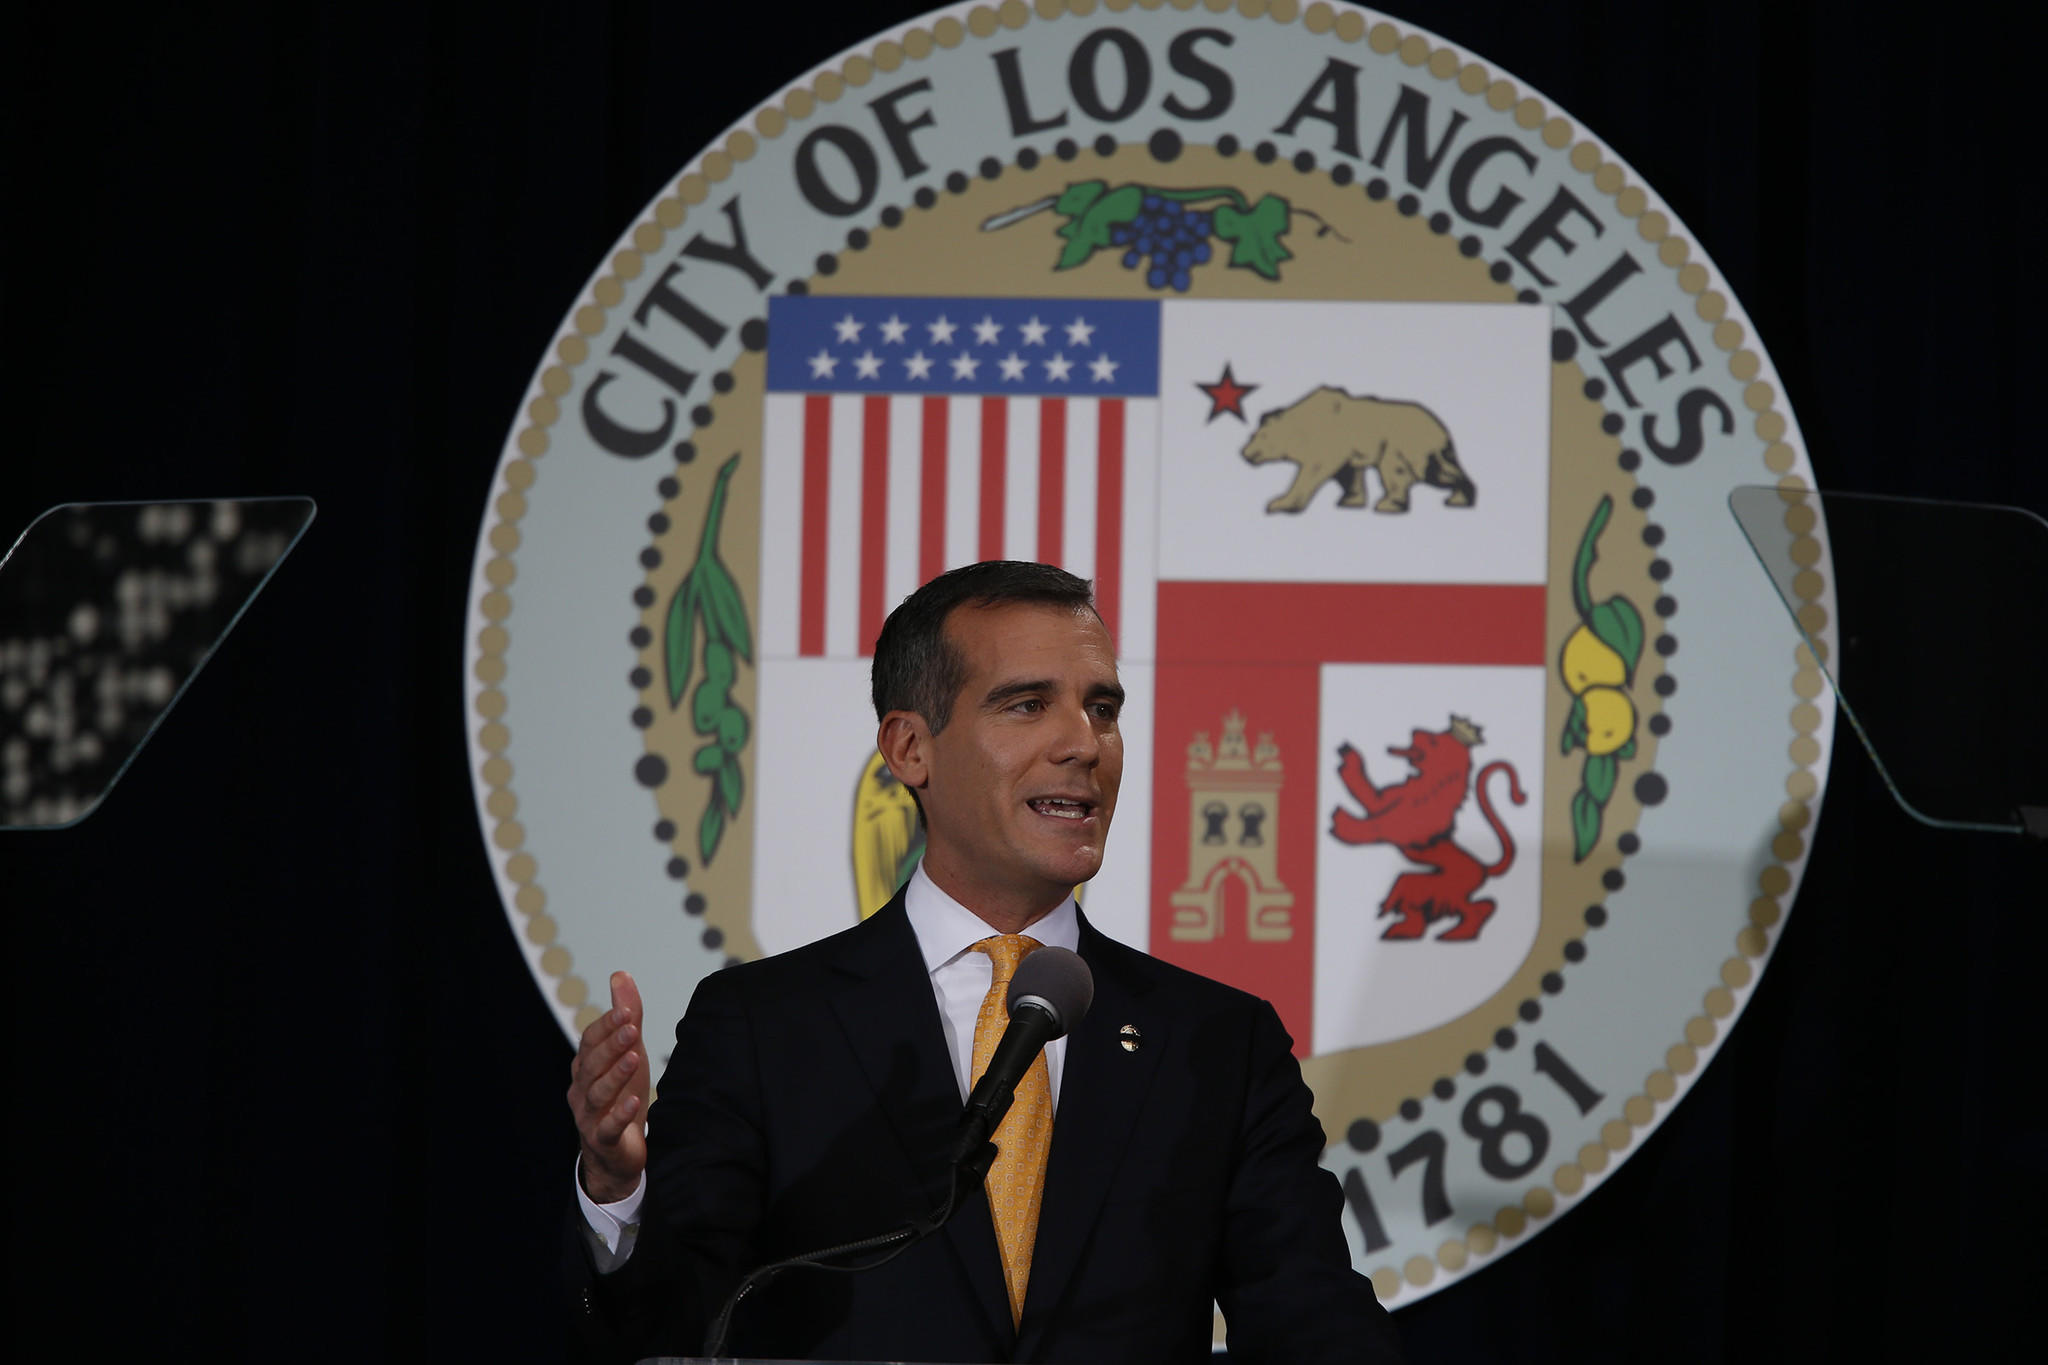 L.A. Mayor Eric Garcetti delivers his first State of the City address Monday.